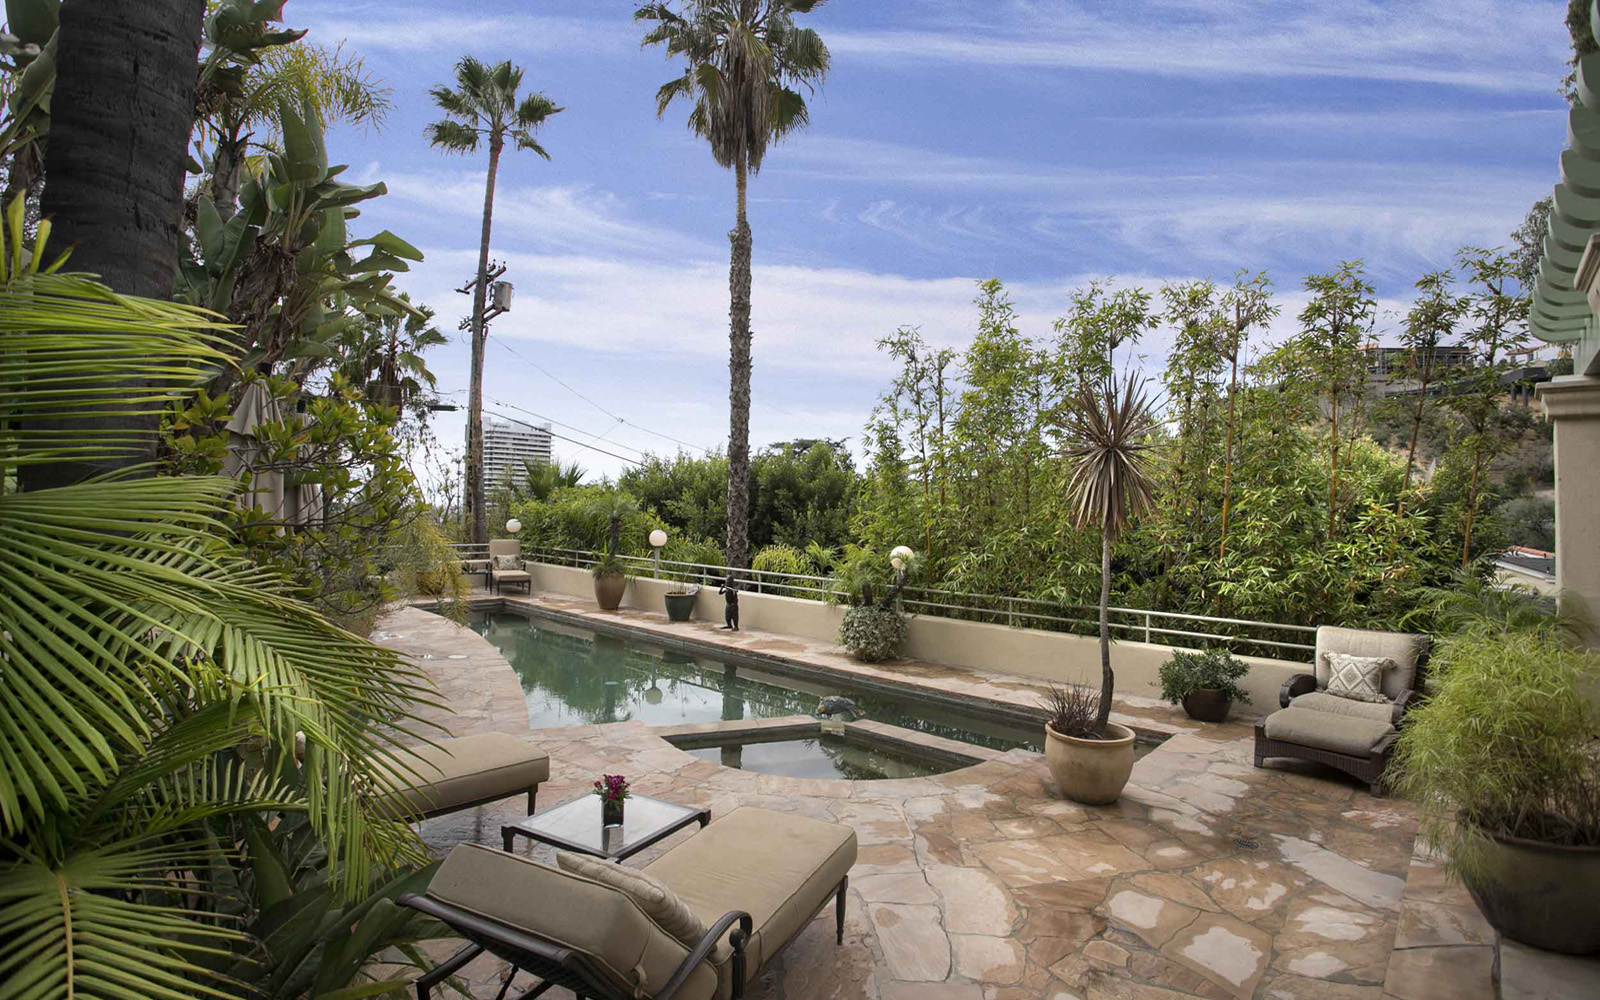 The home's outdoor areas include a patio surrounded not only by flagstone but by spectacular vistas—as well as a pool and private side yard.